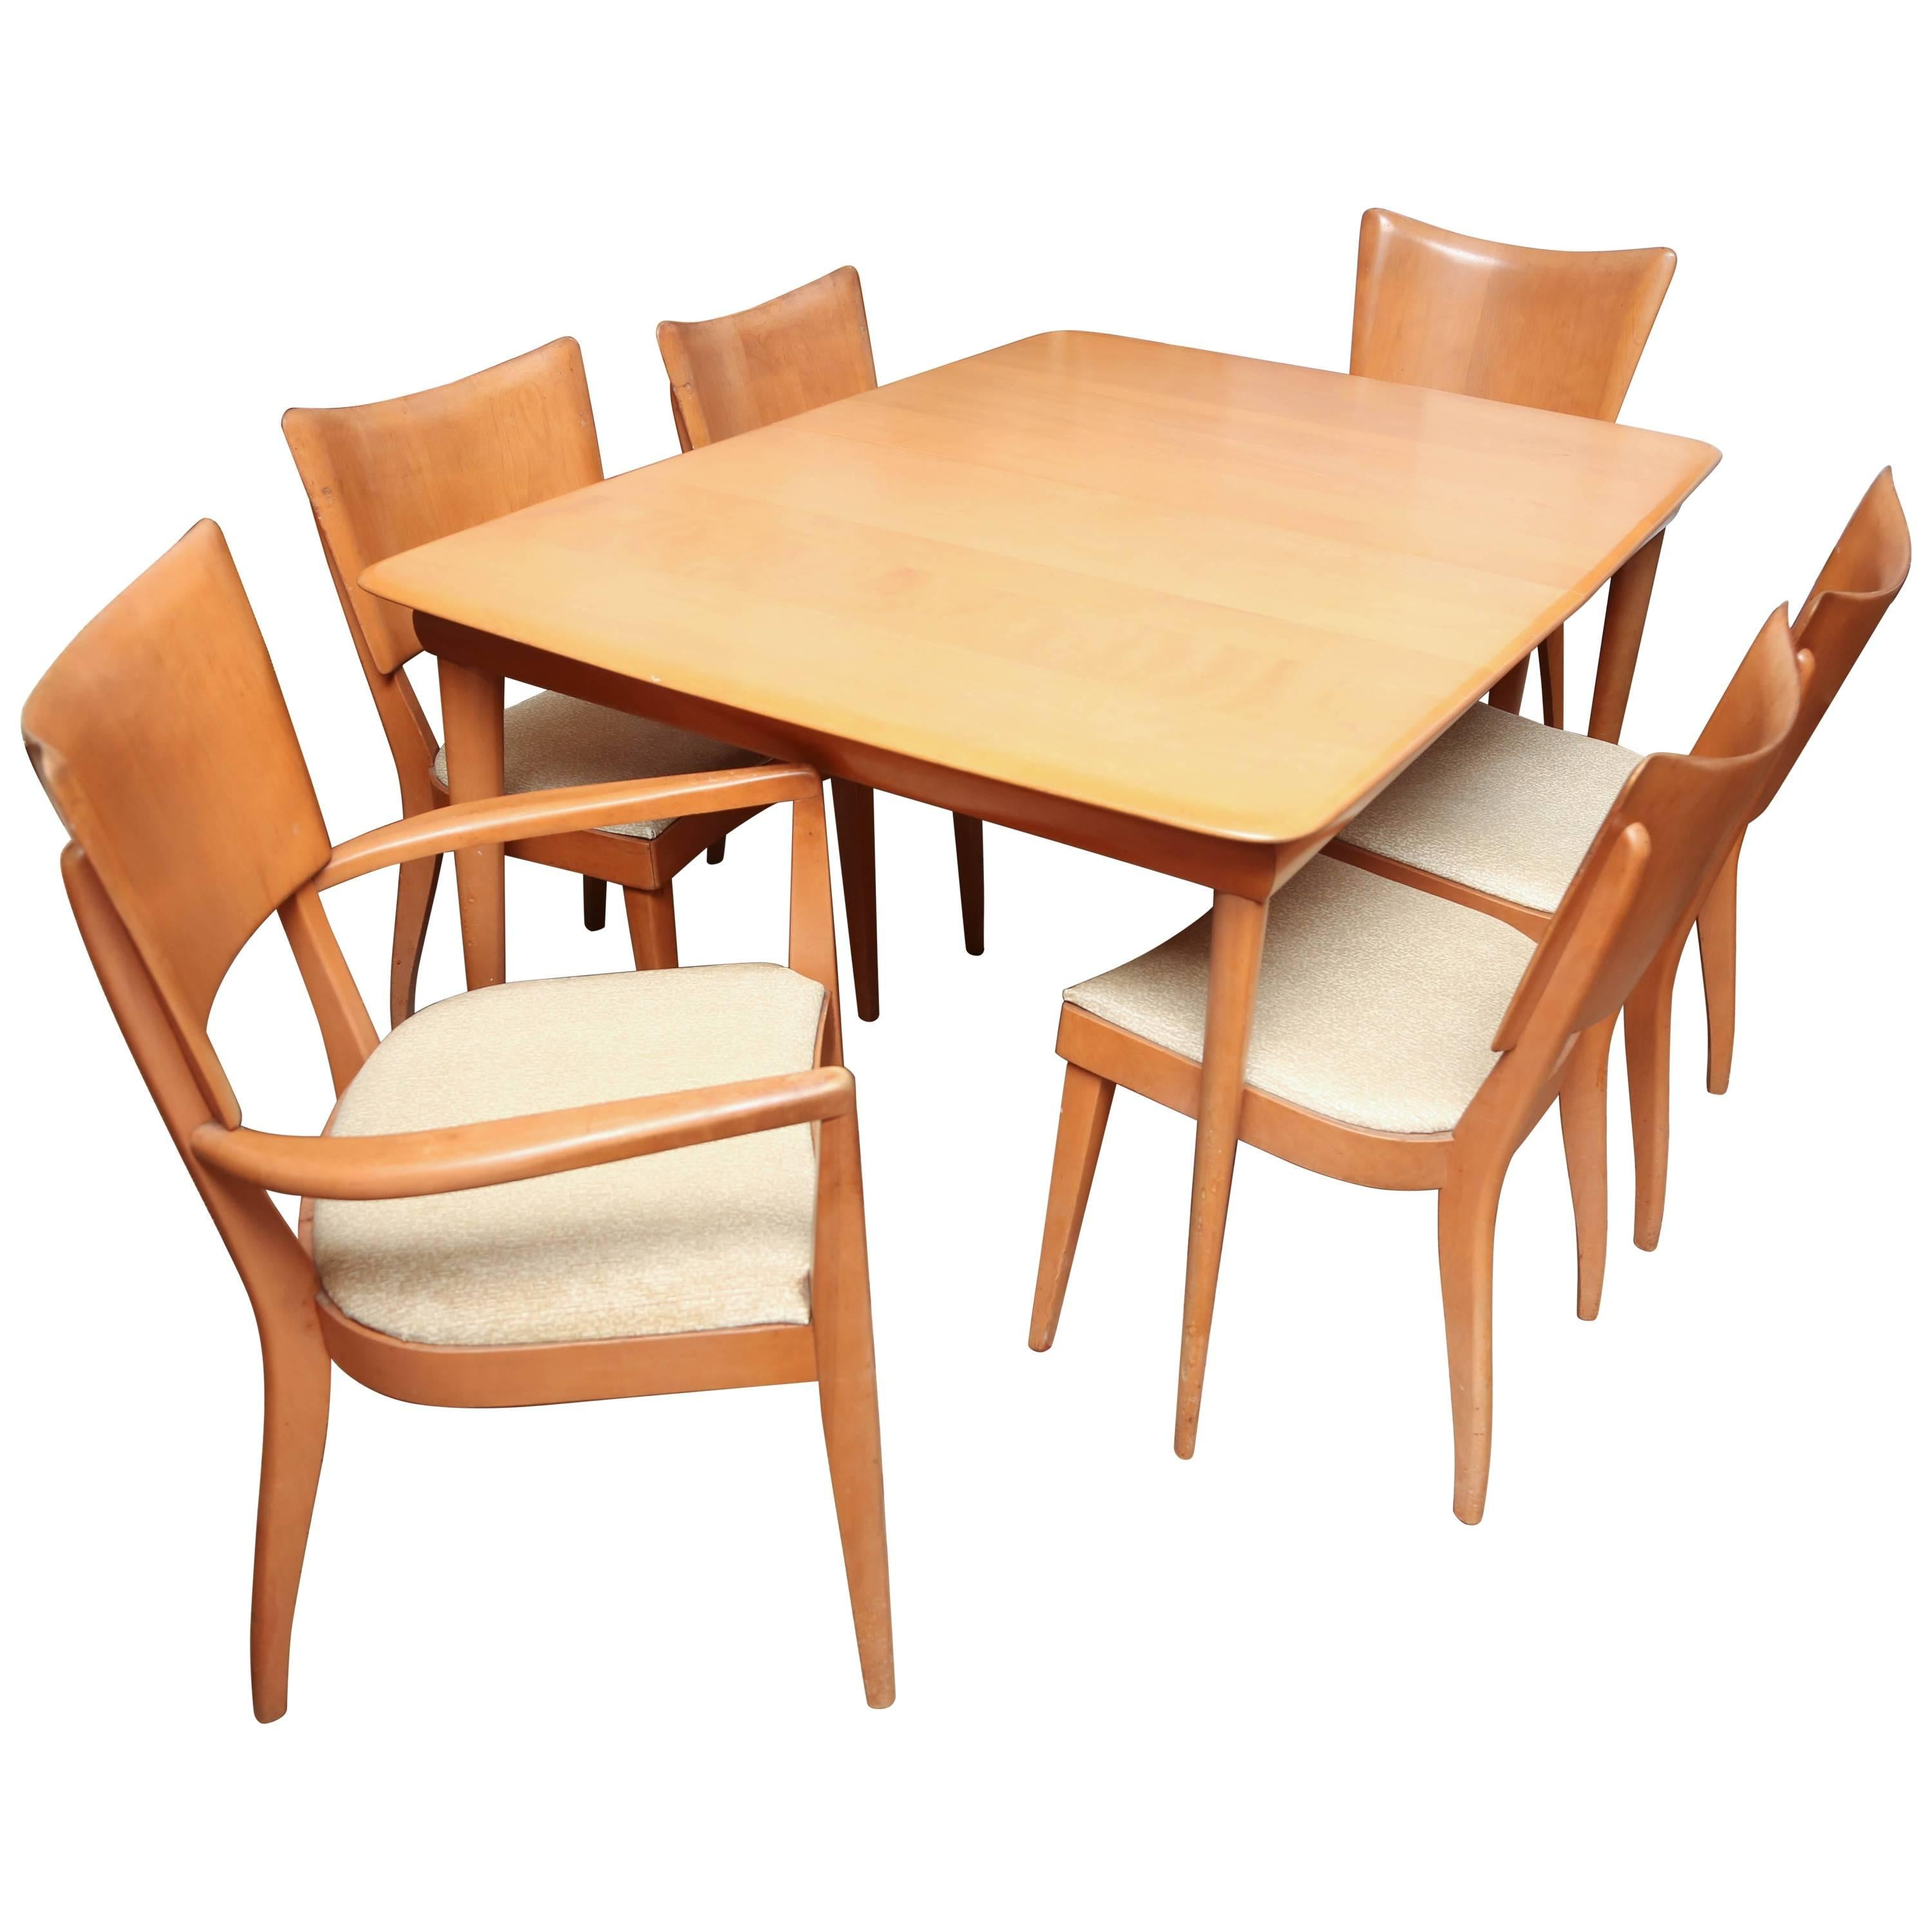 Heywood Wakefield Dining Room Set With Six Chairs, 1960s, USA For Sale